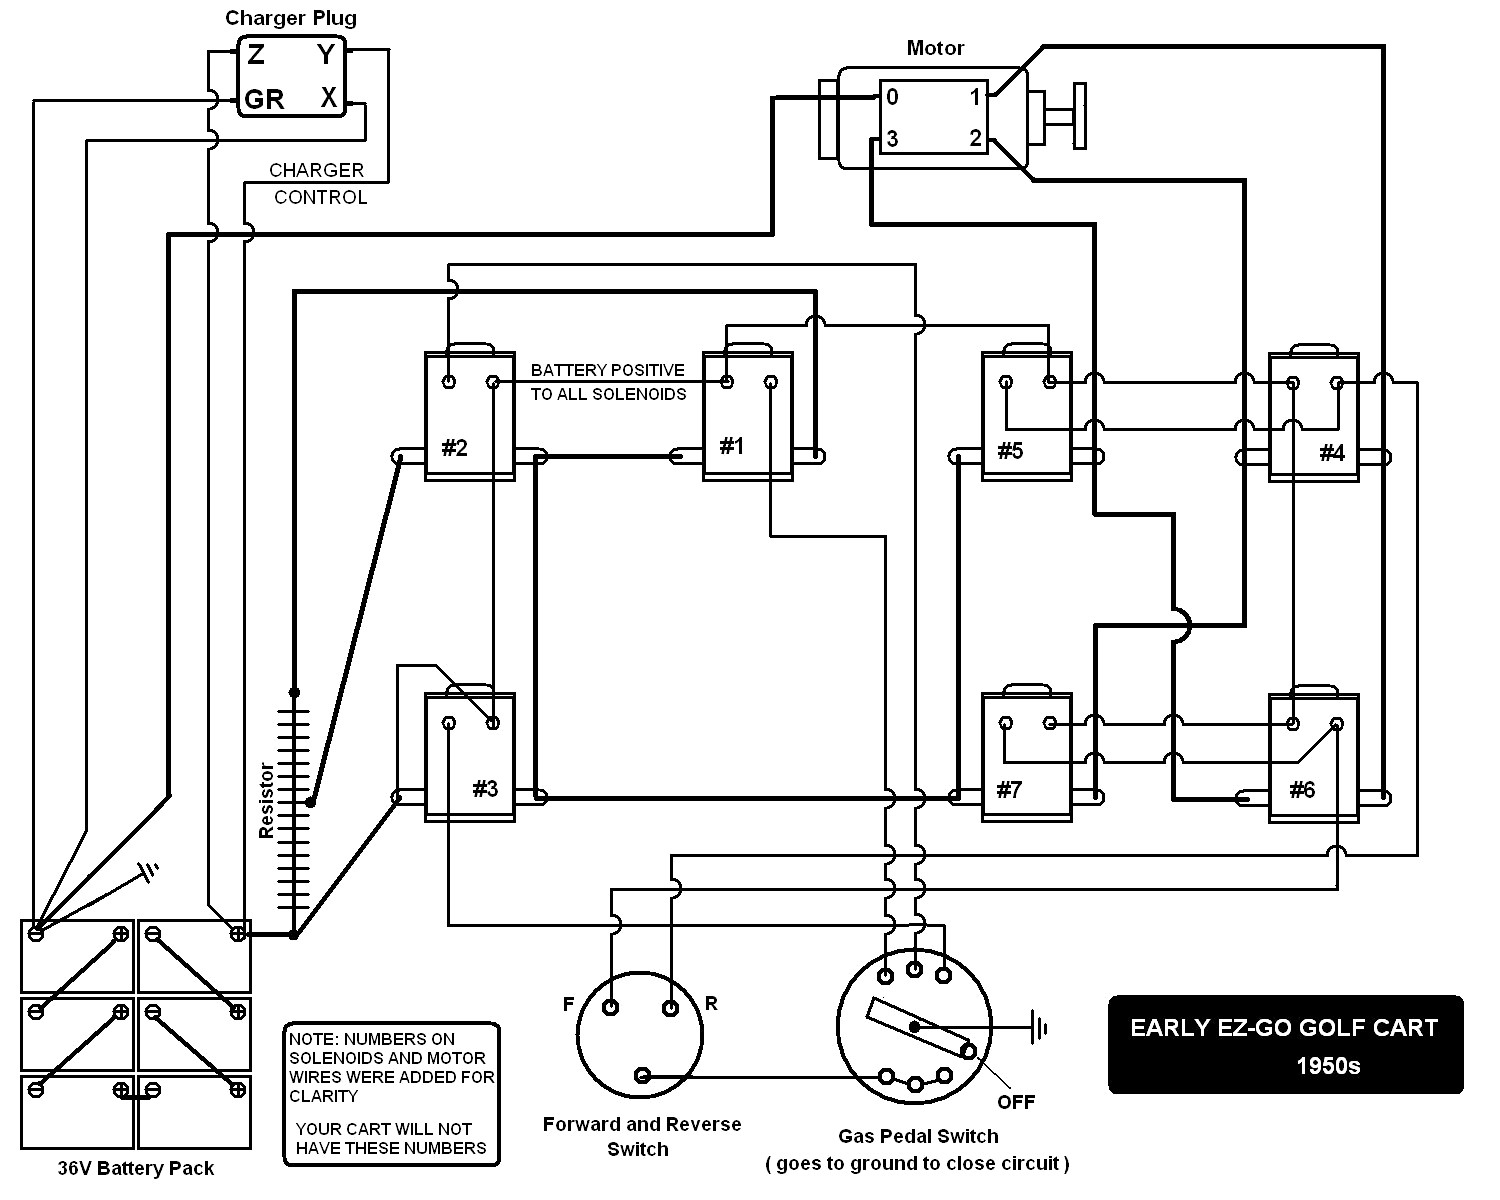 Wiring Diagram 73 Dodge Charger Ignition Wiring Diagram Ez Go Golf